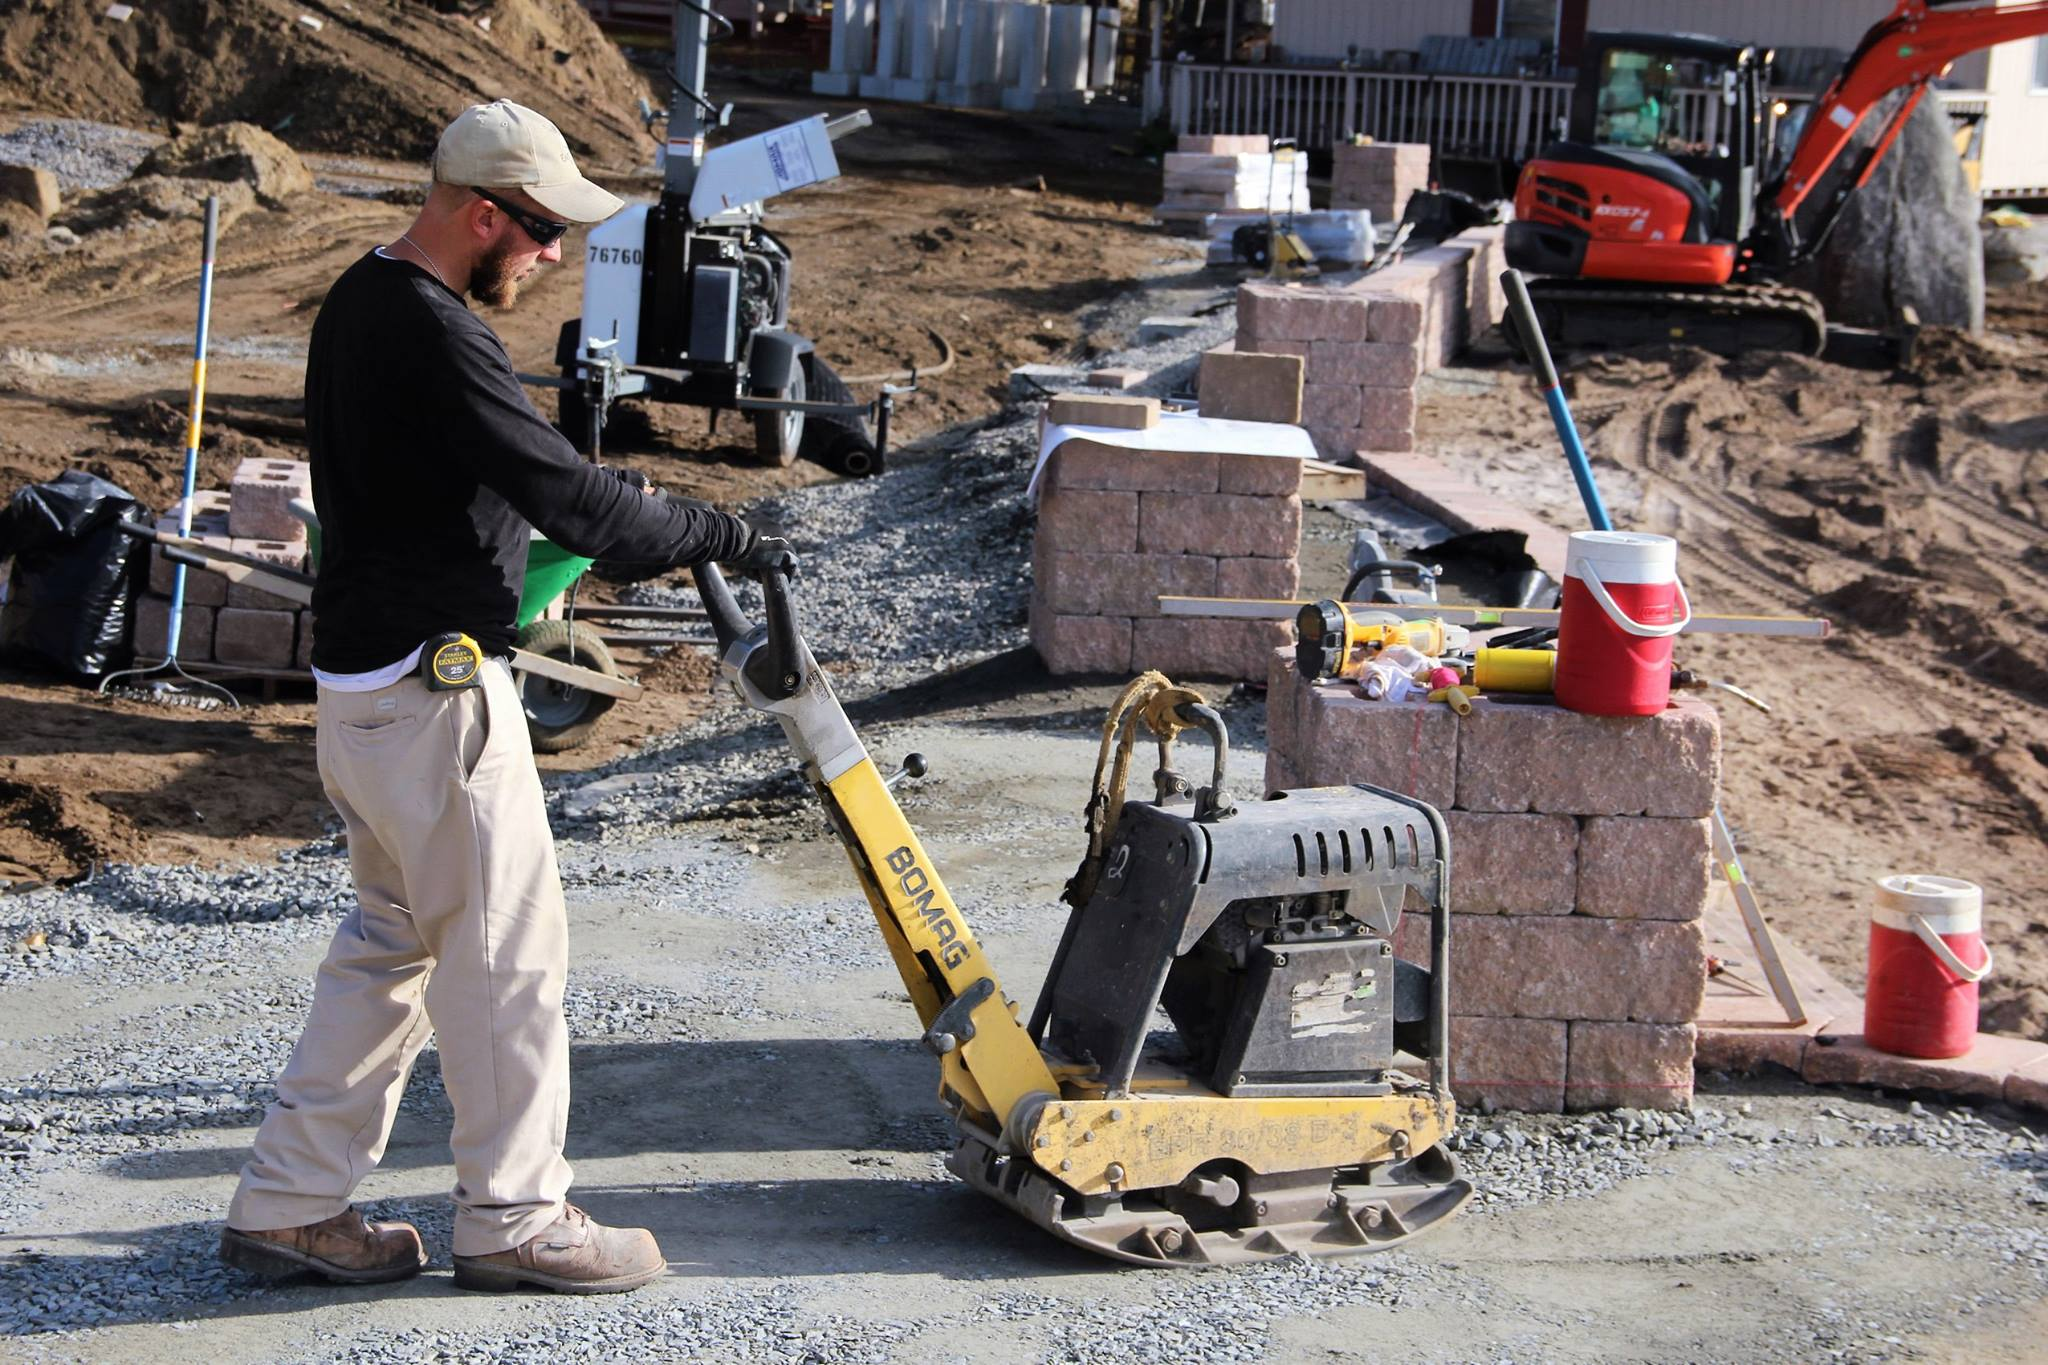 Find landscaping and hardscaping jobs in Reading and Lancaster, PA